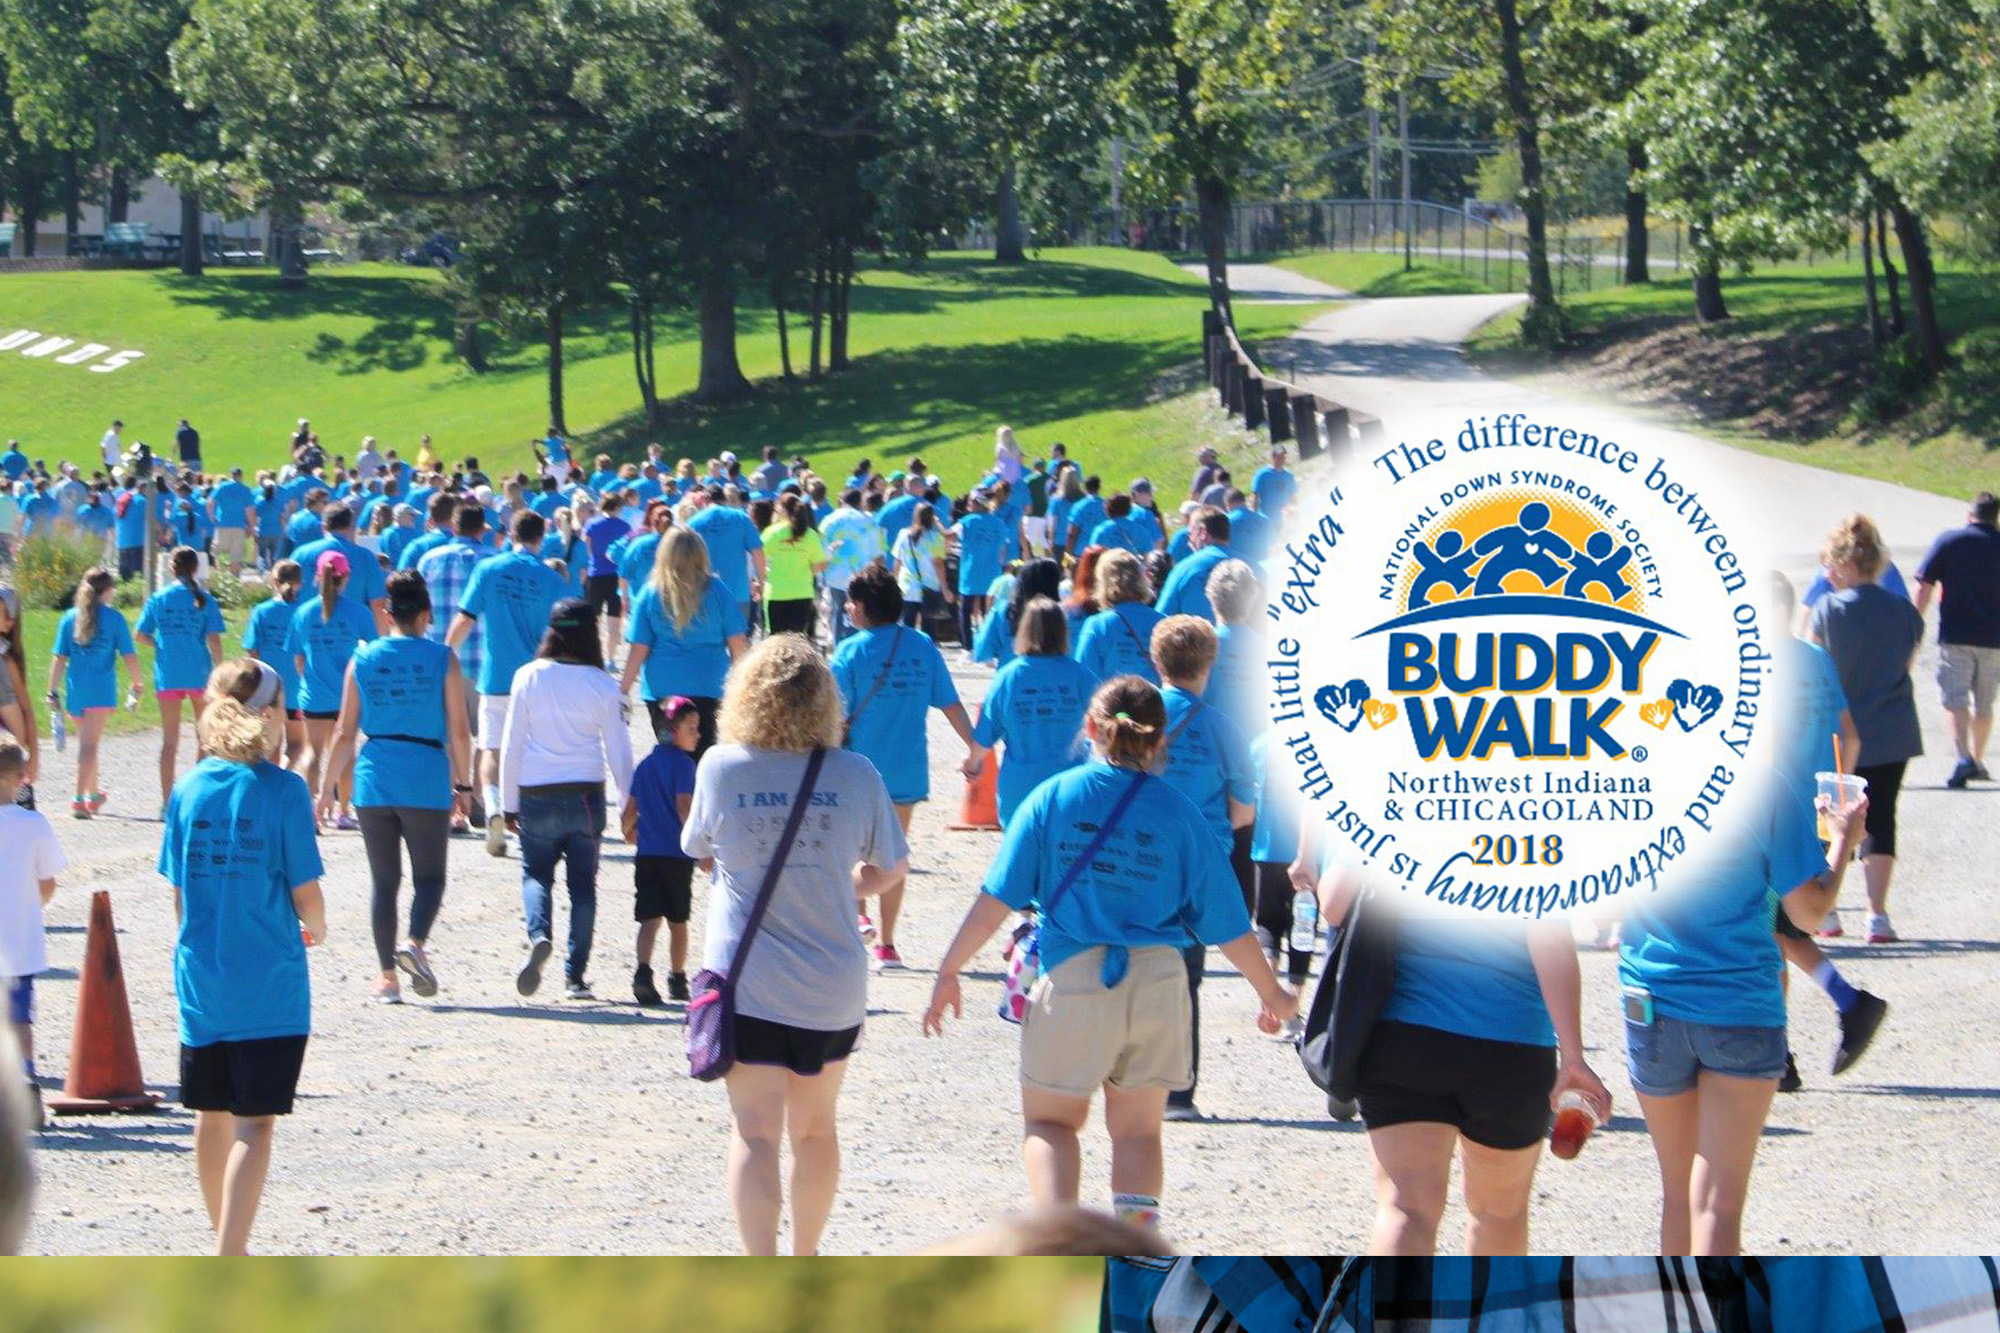 Buddy Walk Shirt Pick-up